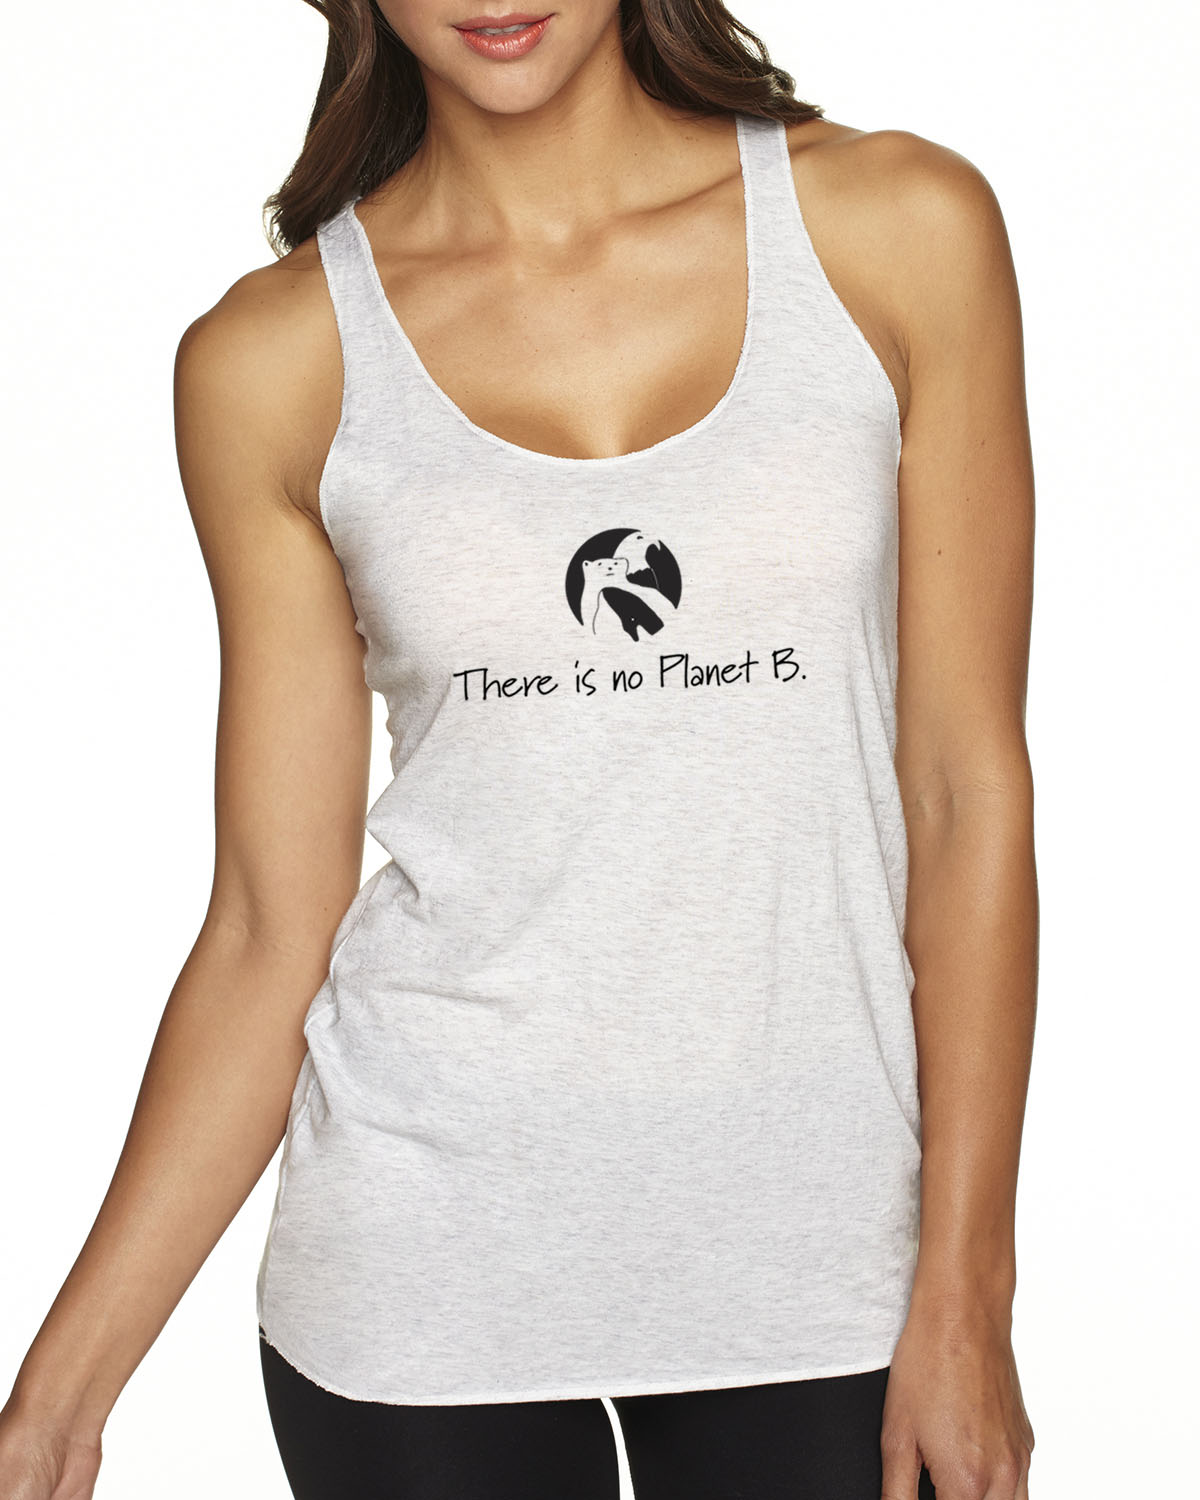 There is No Planet B tri-blend racer-back tank top (heather white)